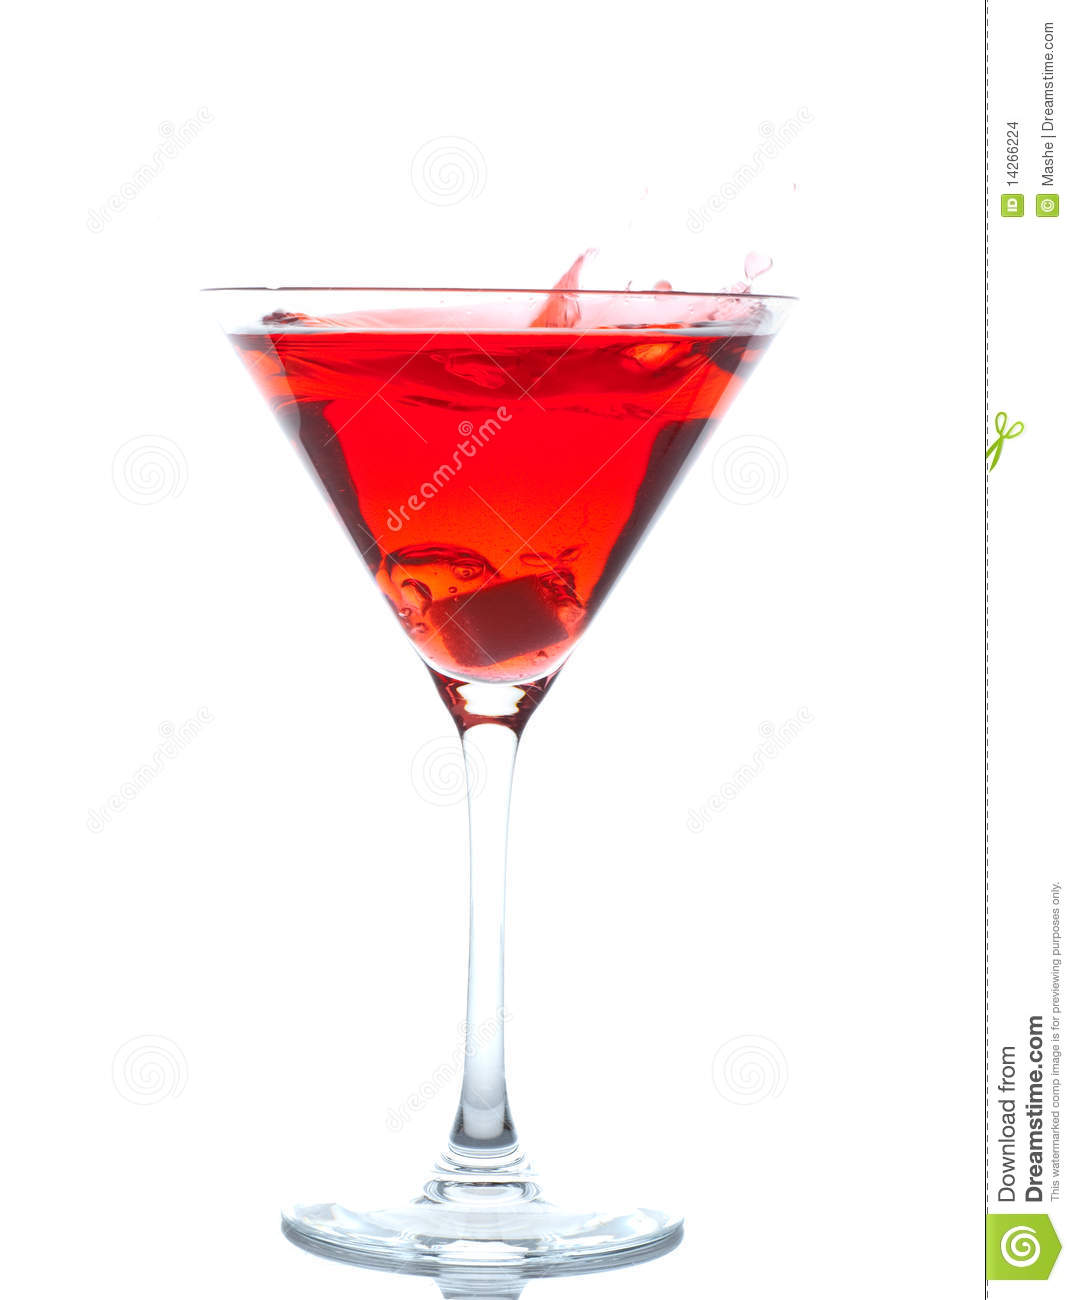 More similar stock images of ` Cherry Blossom Cocktail `